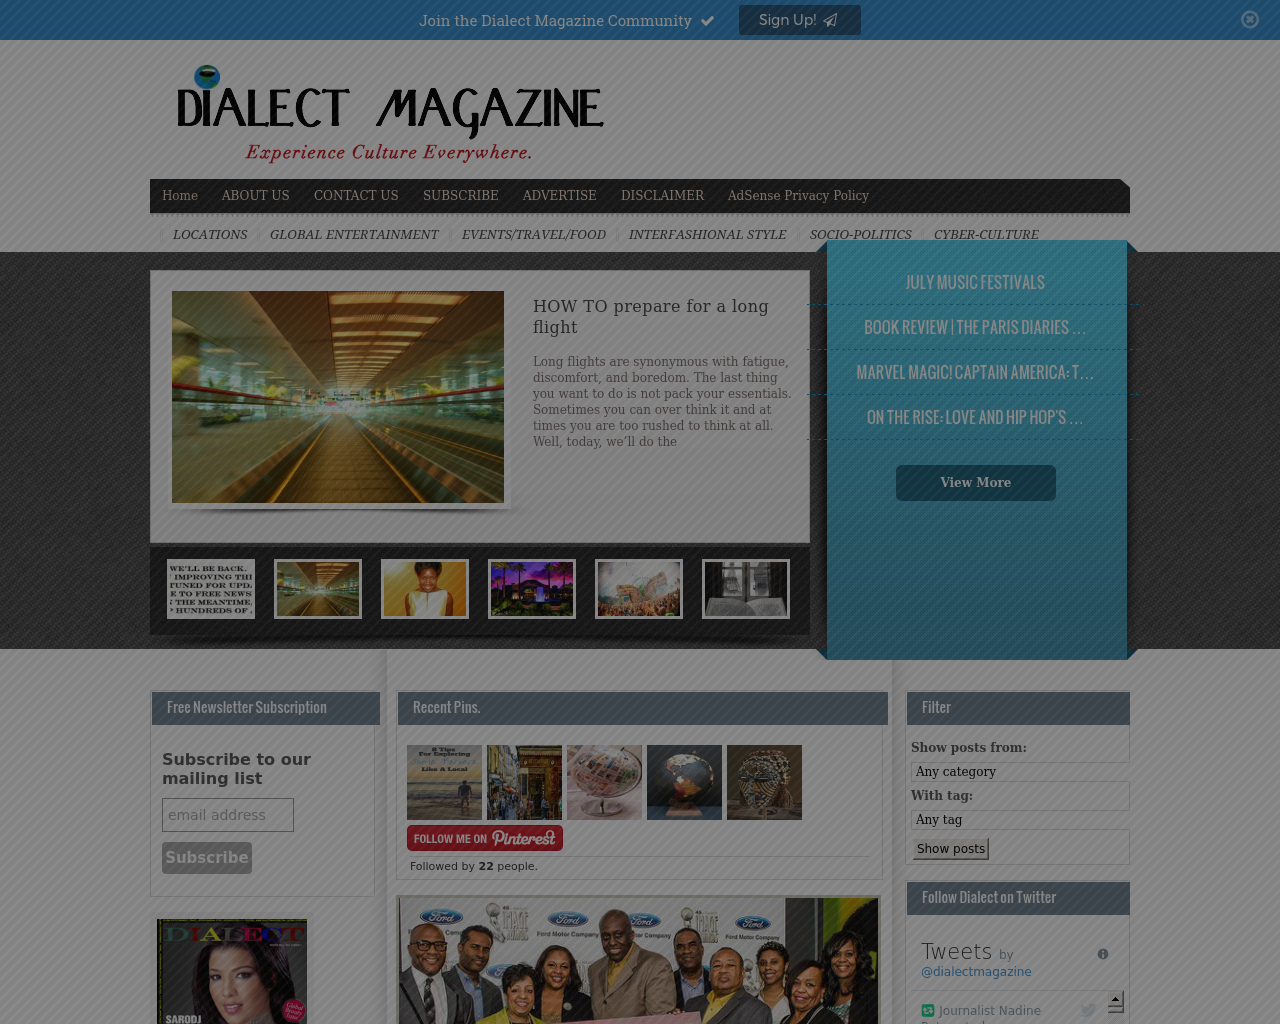 Dialect-Magazine-Advertising-Reviews-Pricing